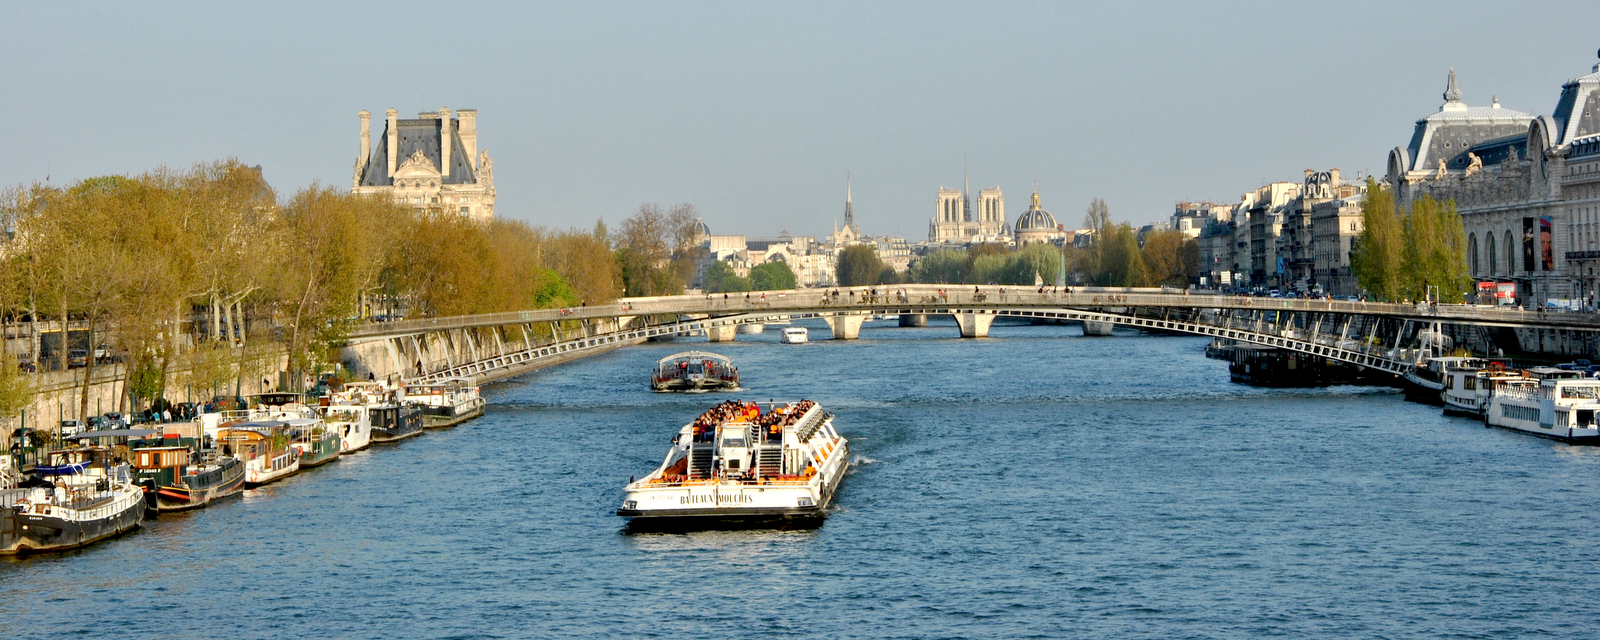 balade paris promenades sur la seine comment choisir enjoy life in paris. Black Bedroom Furniture Sets. Home Design Ideas